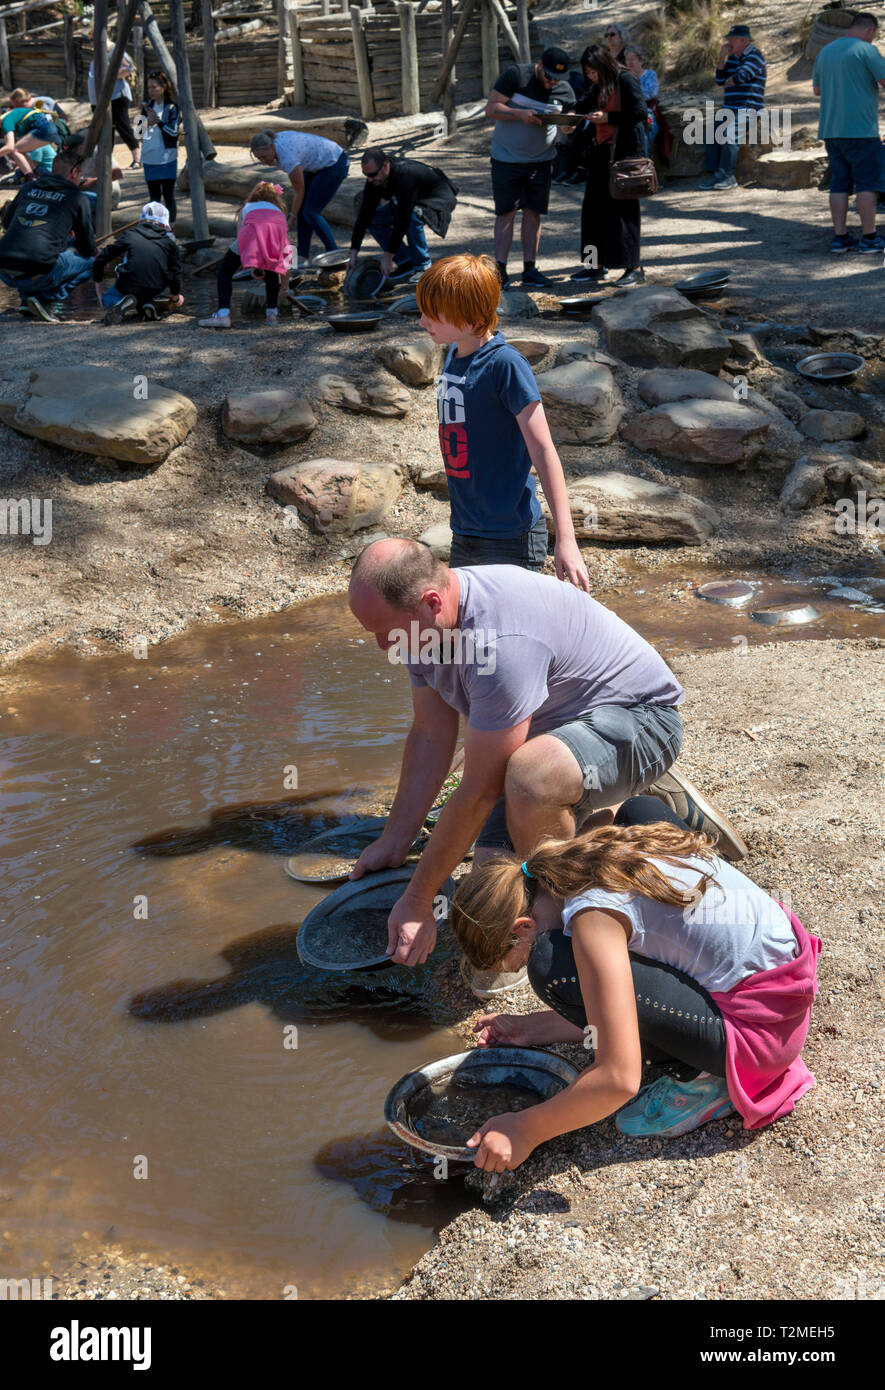 Family panning for gold at Sovereign Hill, an open air museum in the old gold mining town of Ballarat, Victoria, Australia - Stock Image